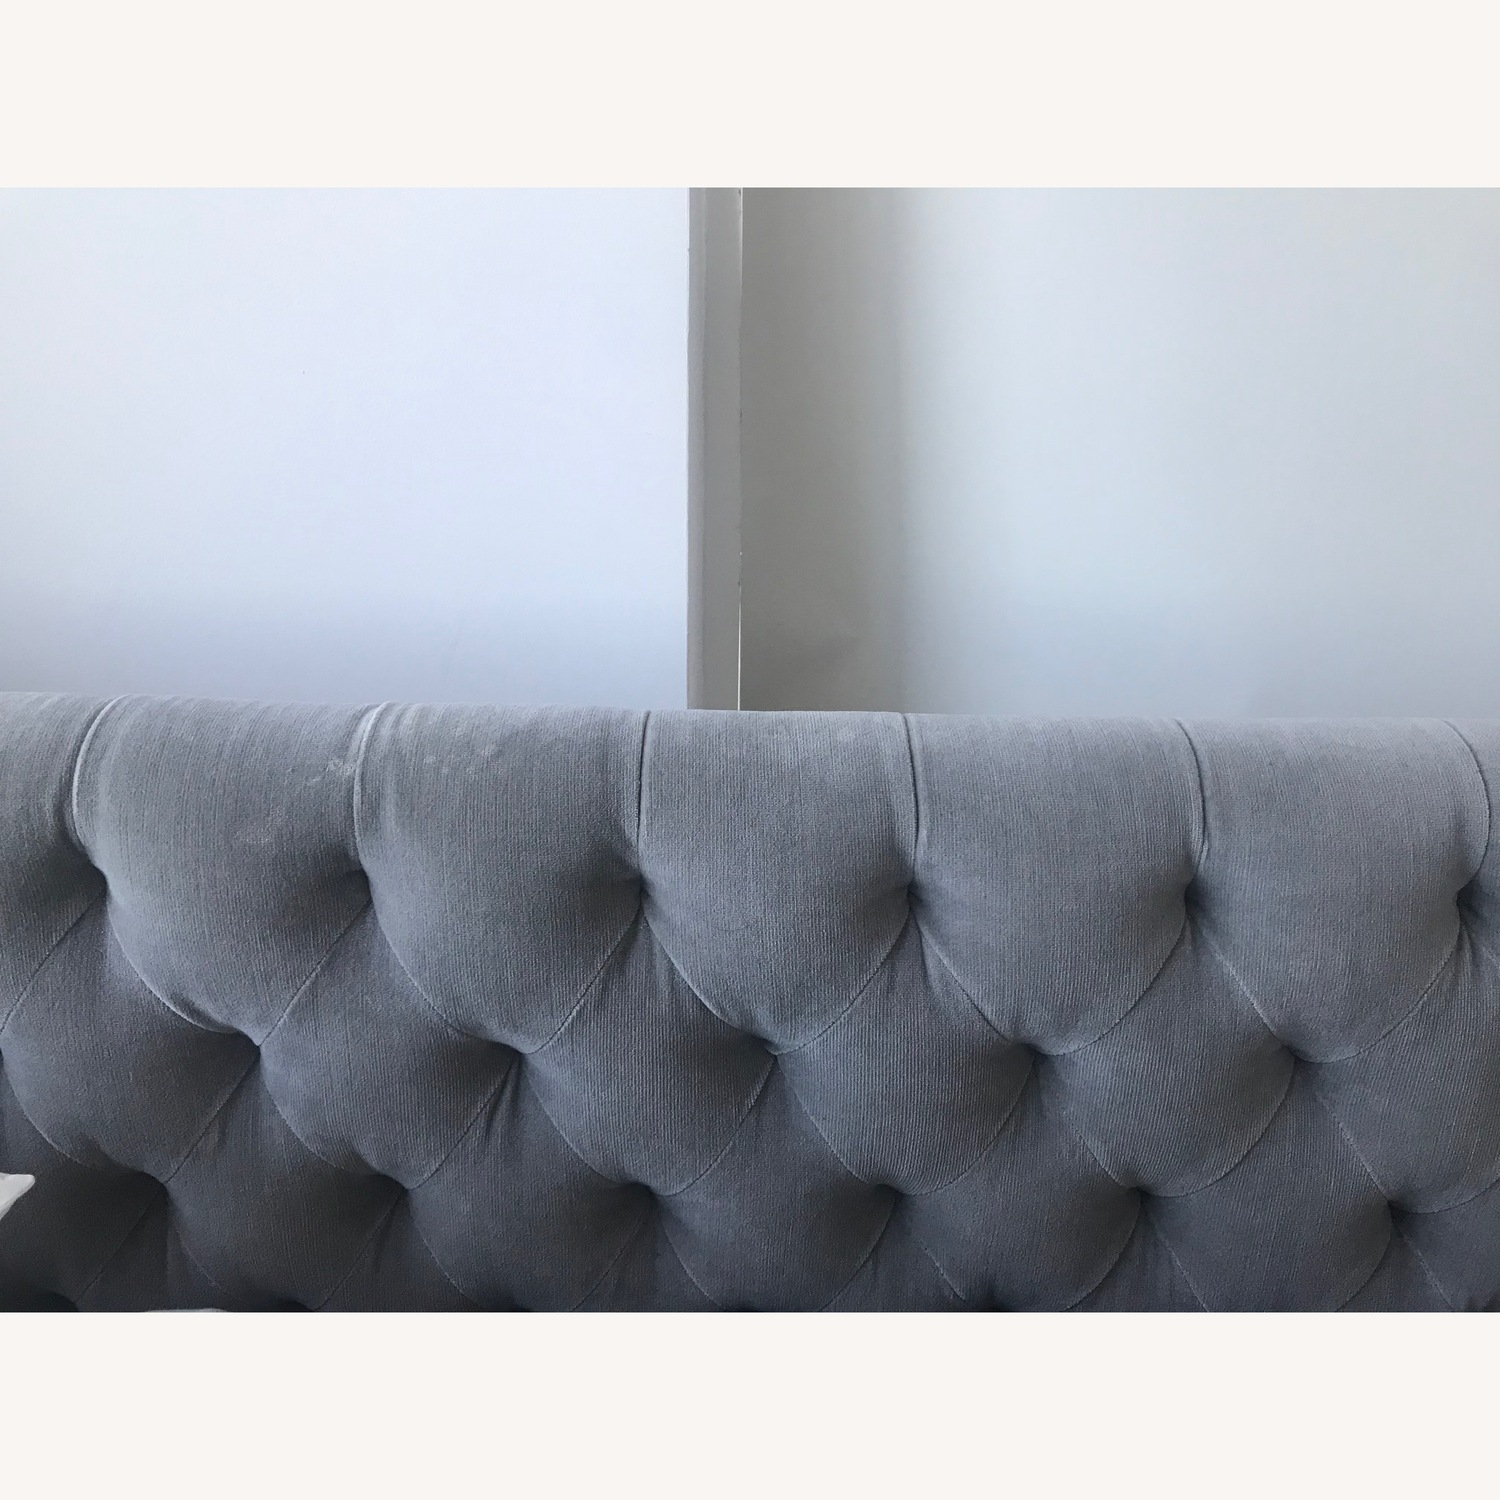 Restoration Hardware Devyn Tufted Bed - image-8